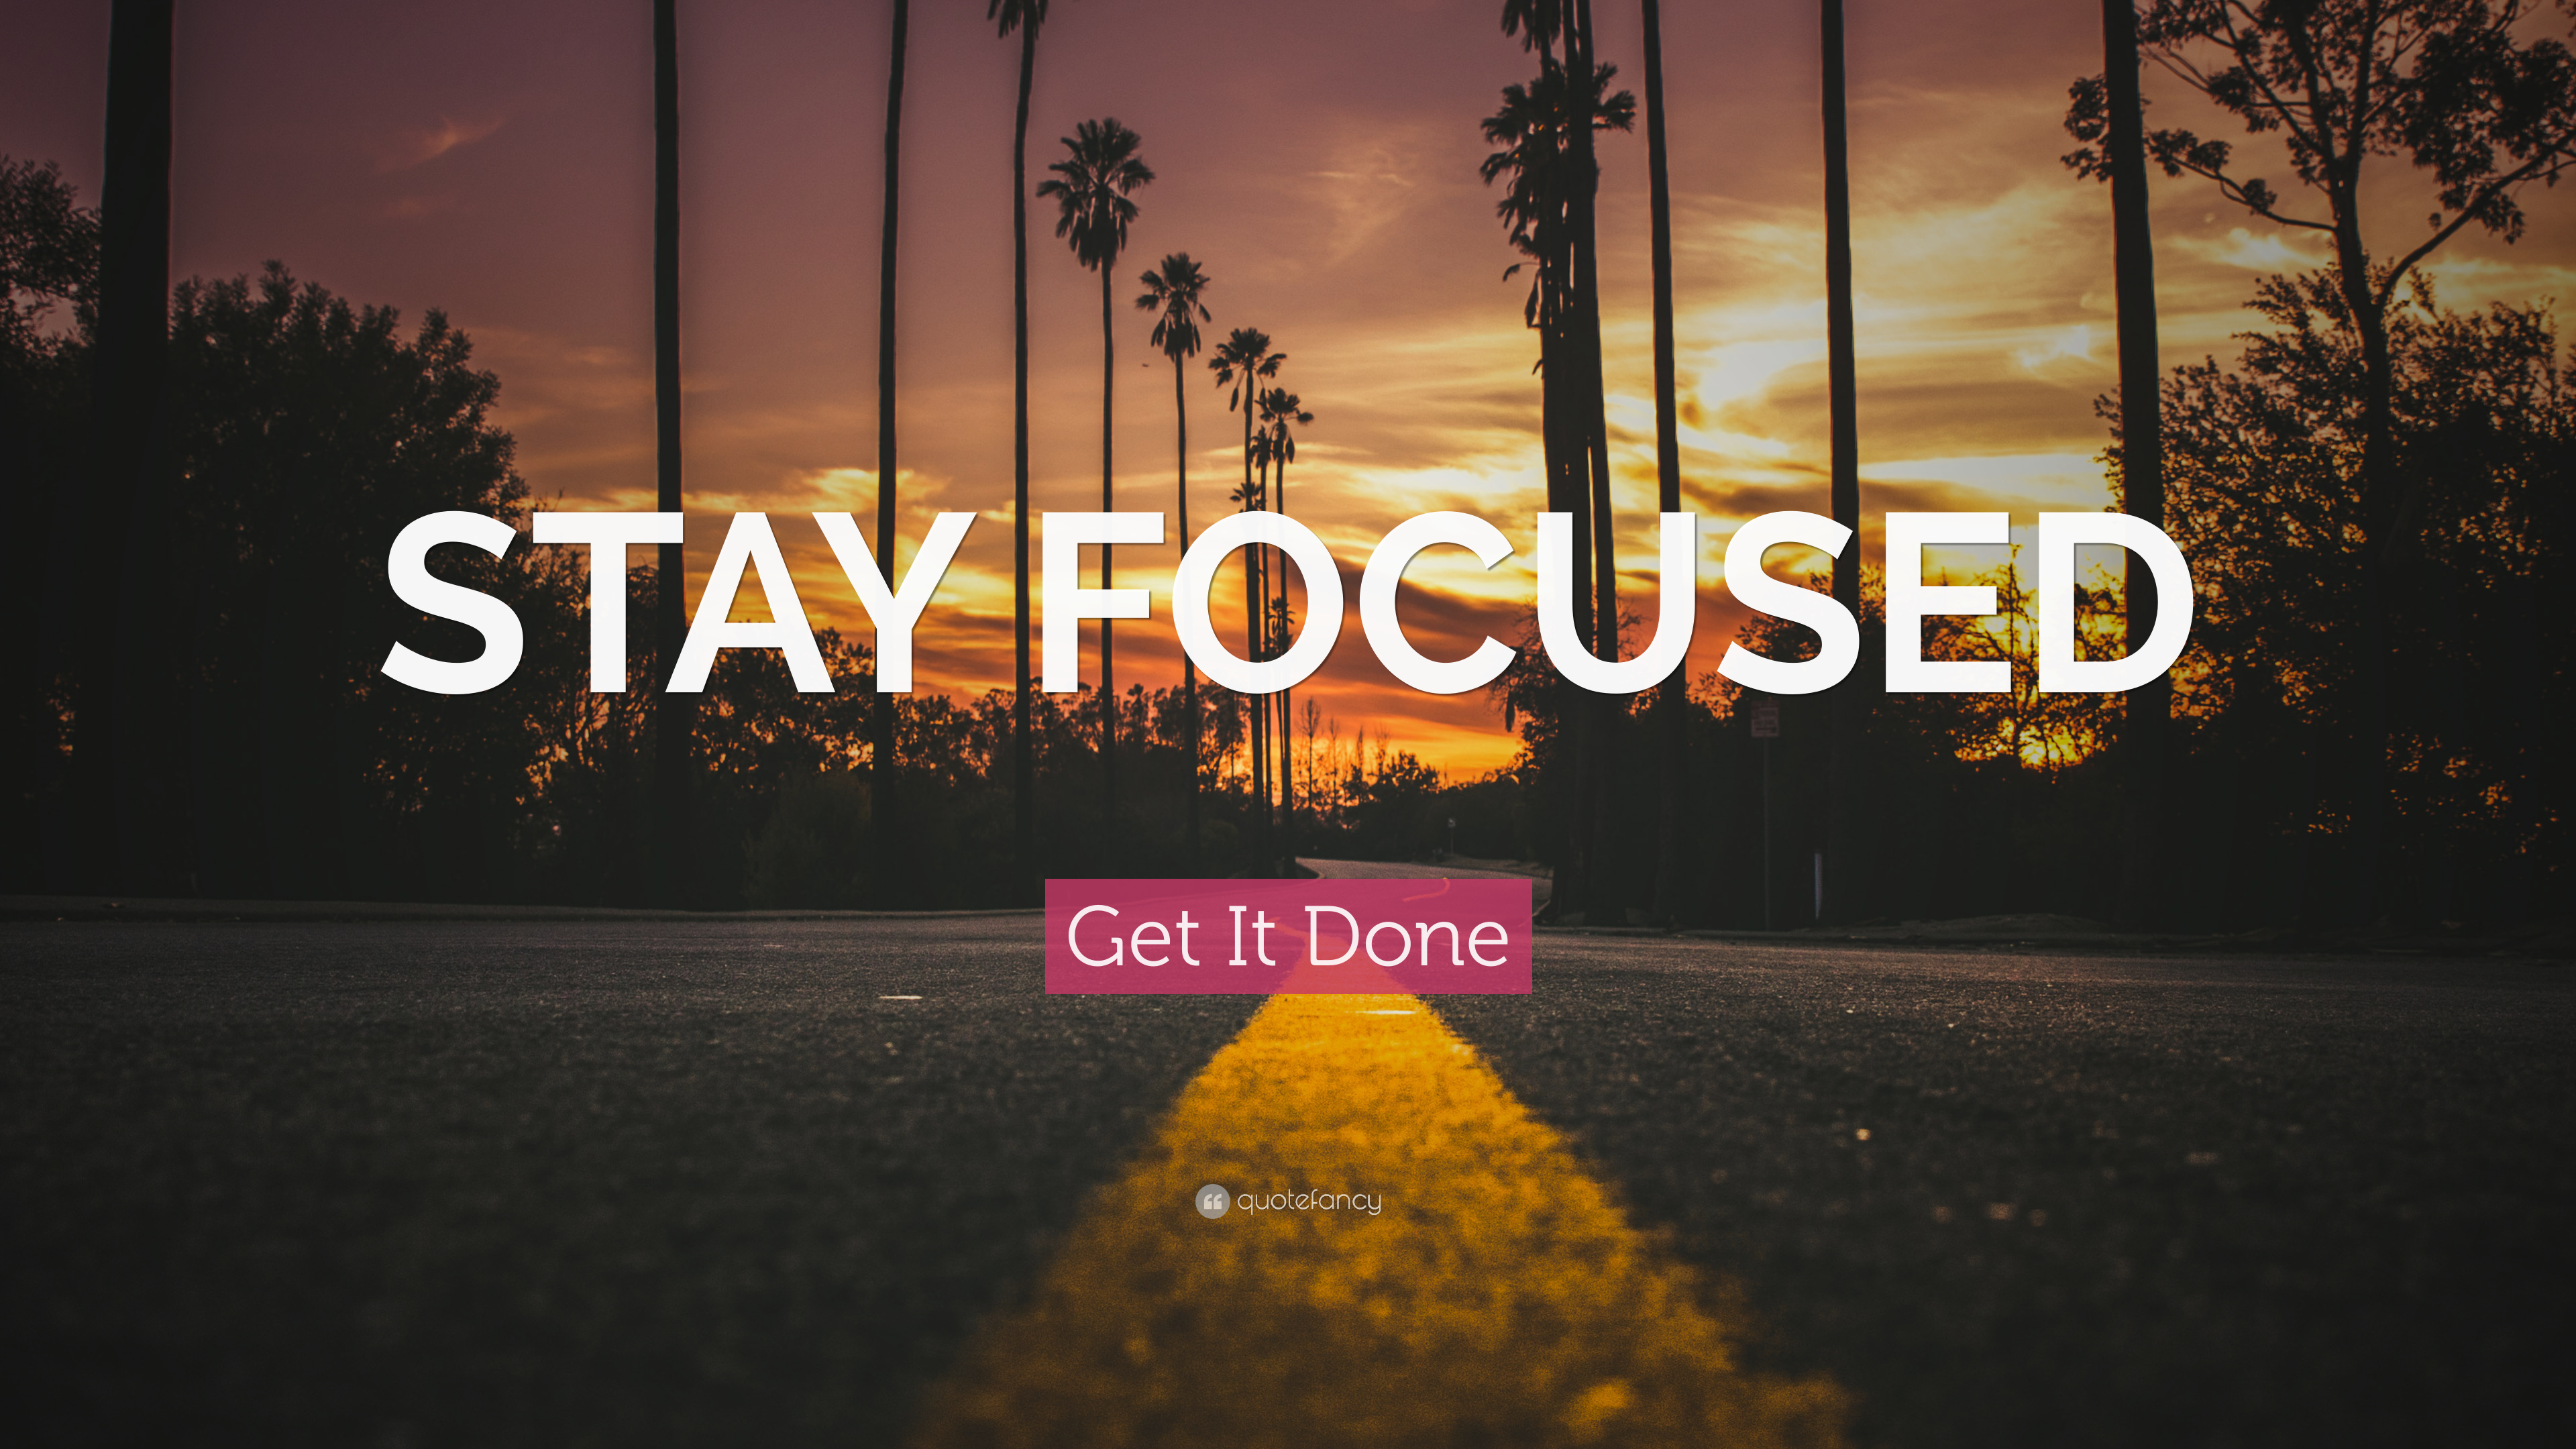 Why You Cannot Stay Focused - Causes and Solutions